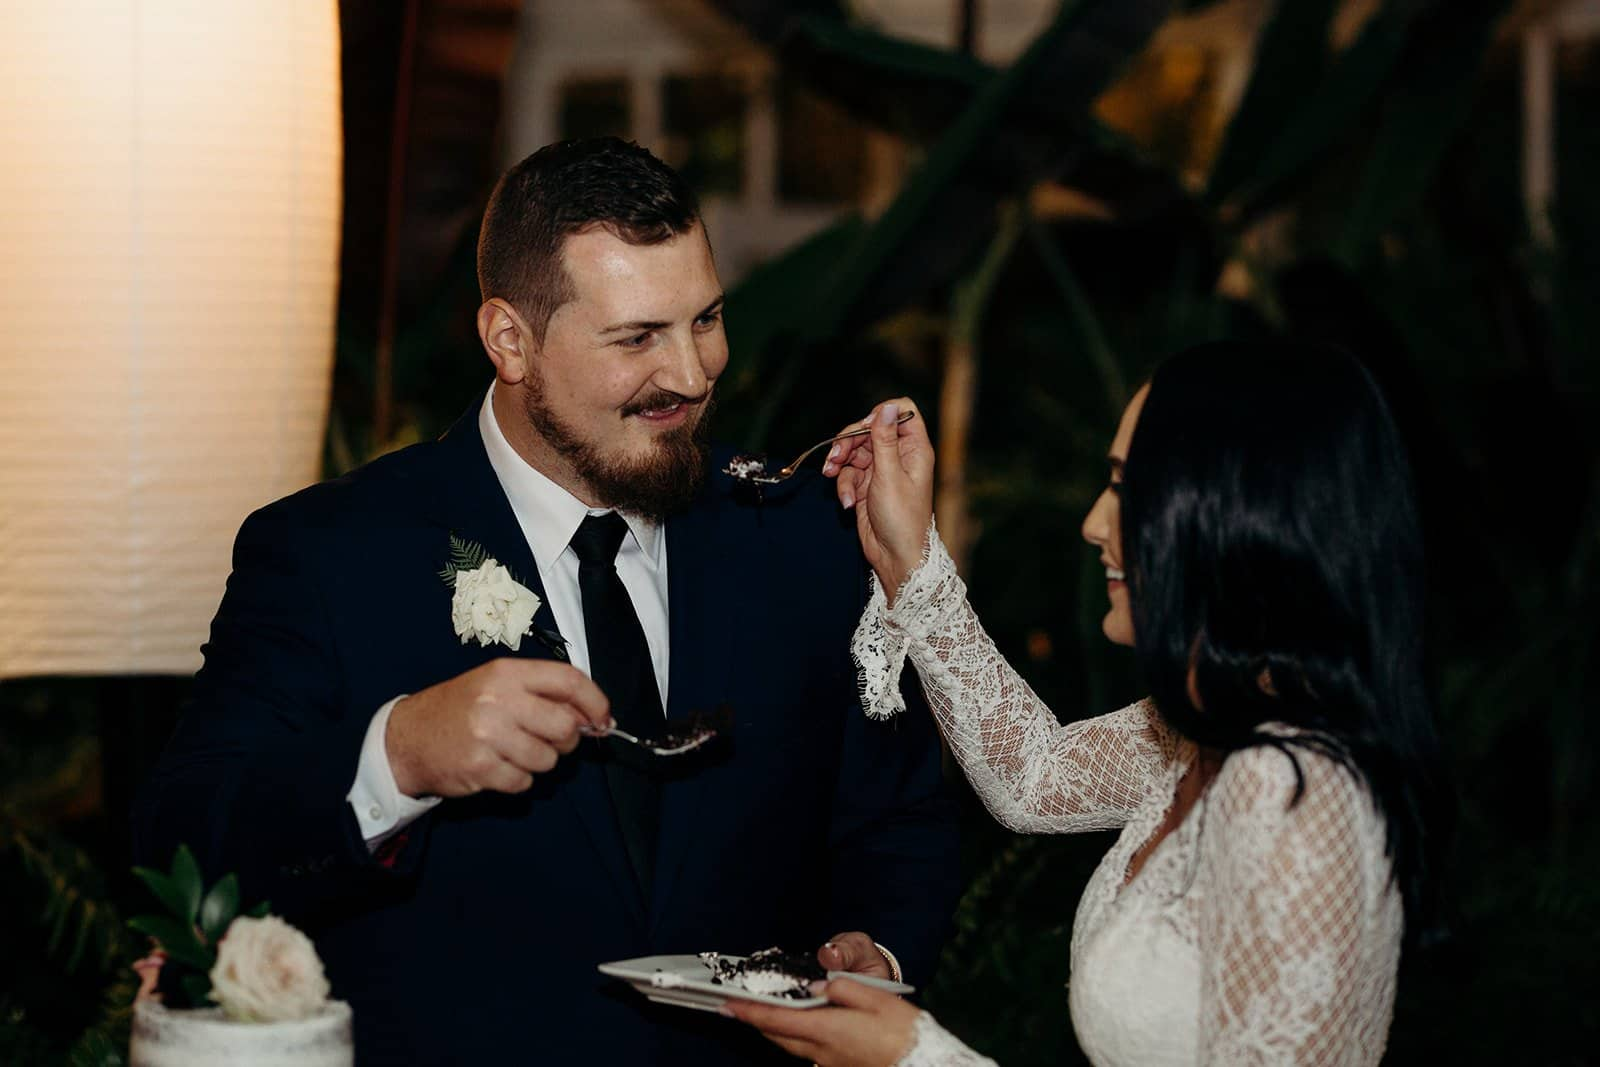 Groom smiles at bride as she feeds him cake